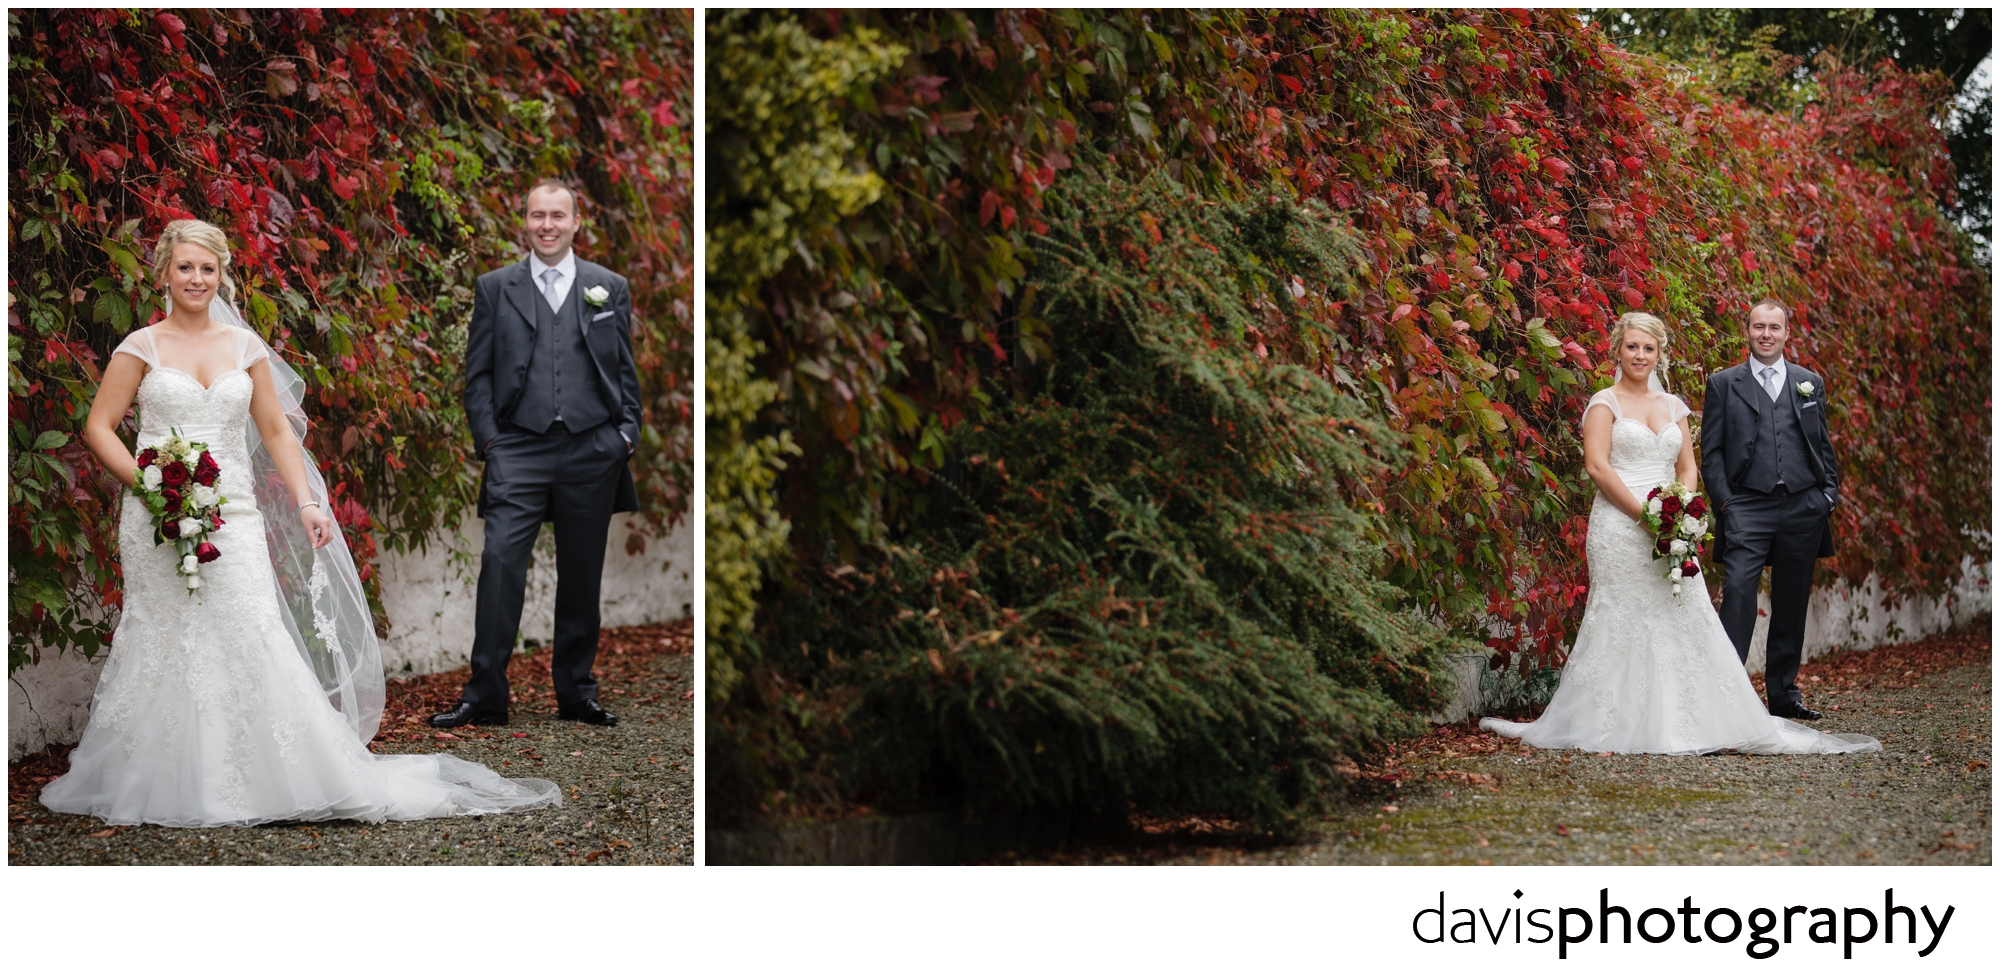 Davis Photography – wedding photography northern ireland ...